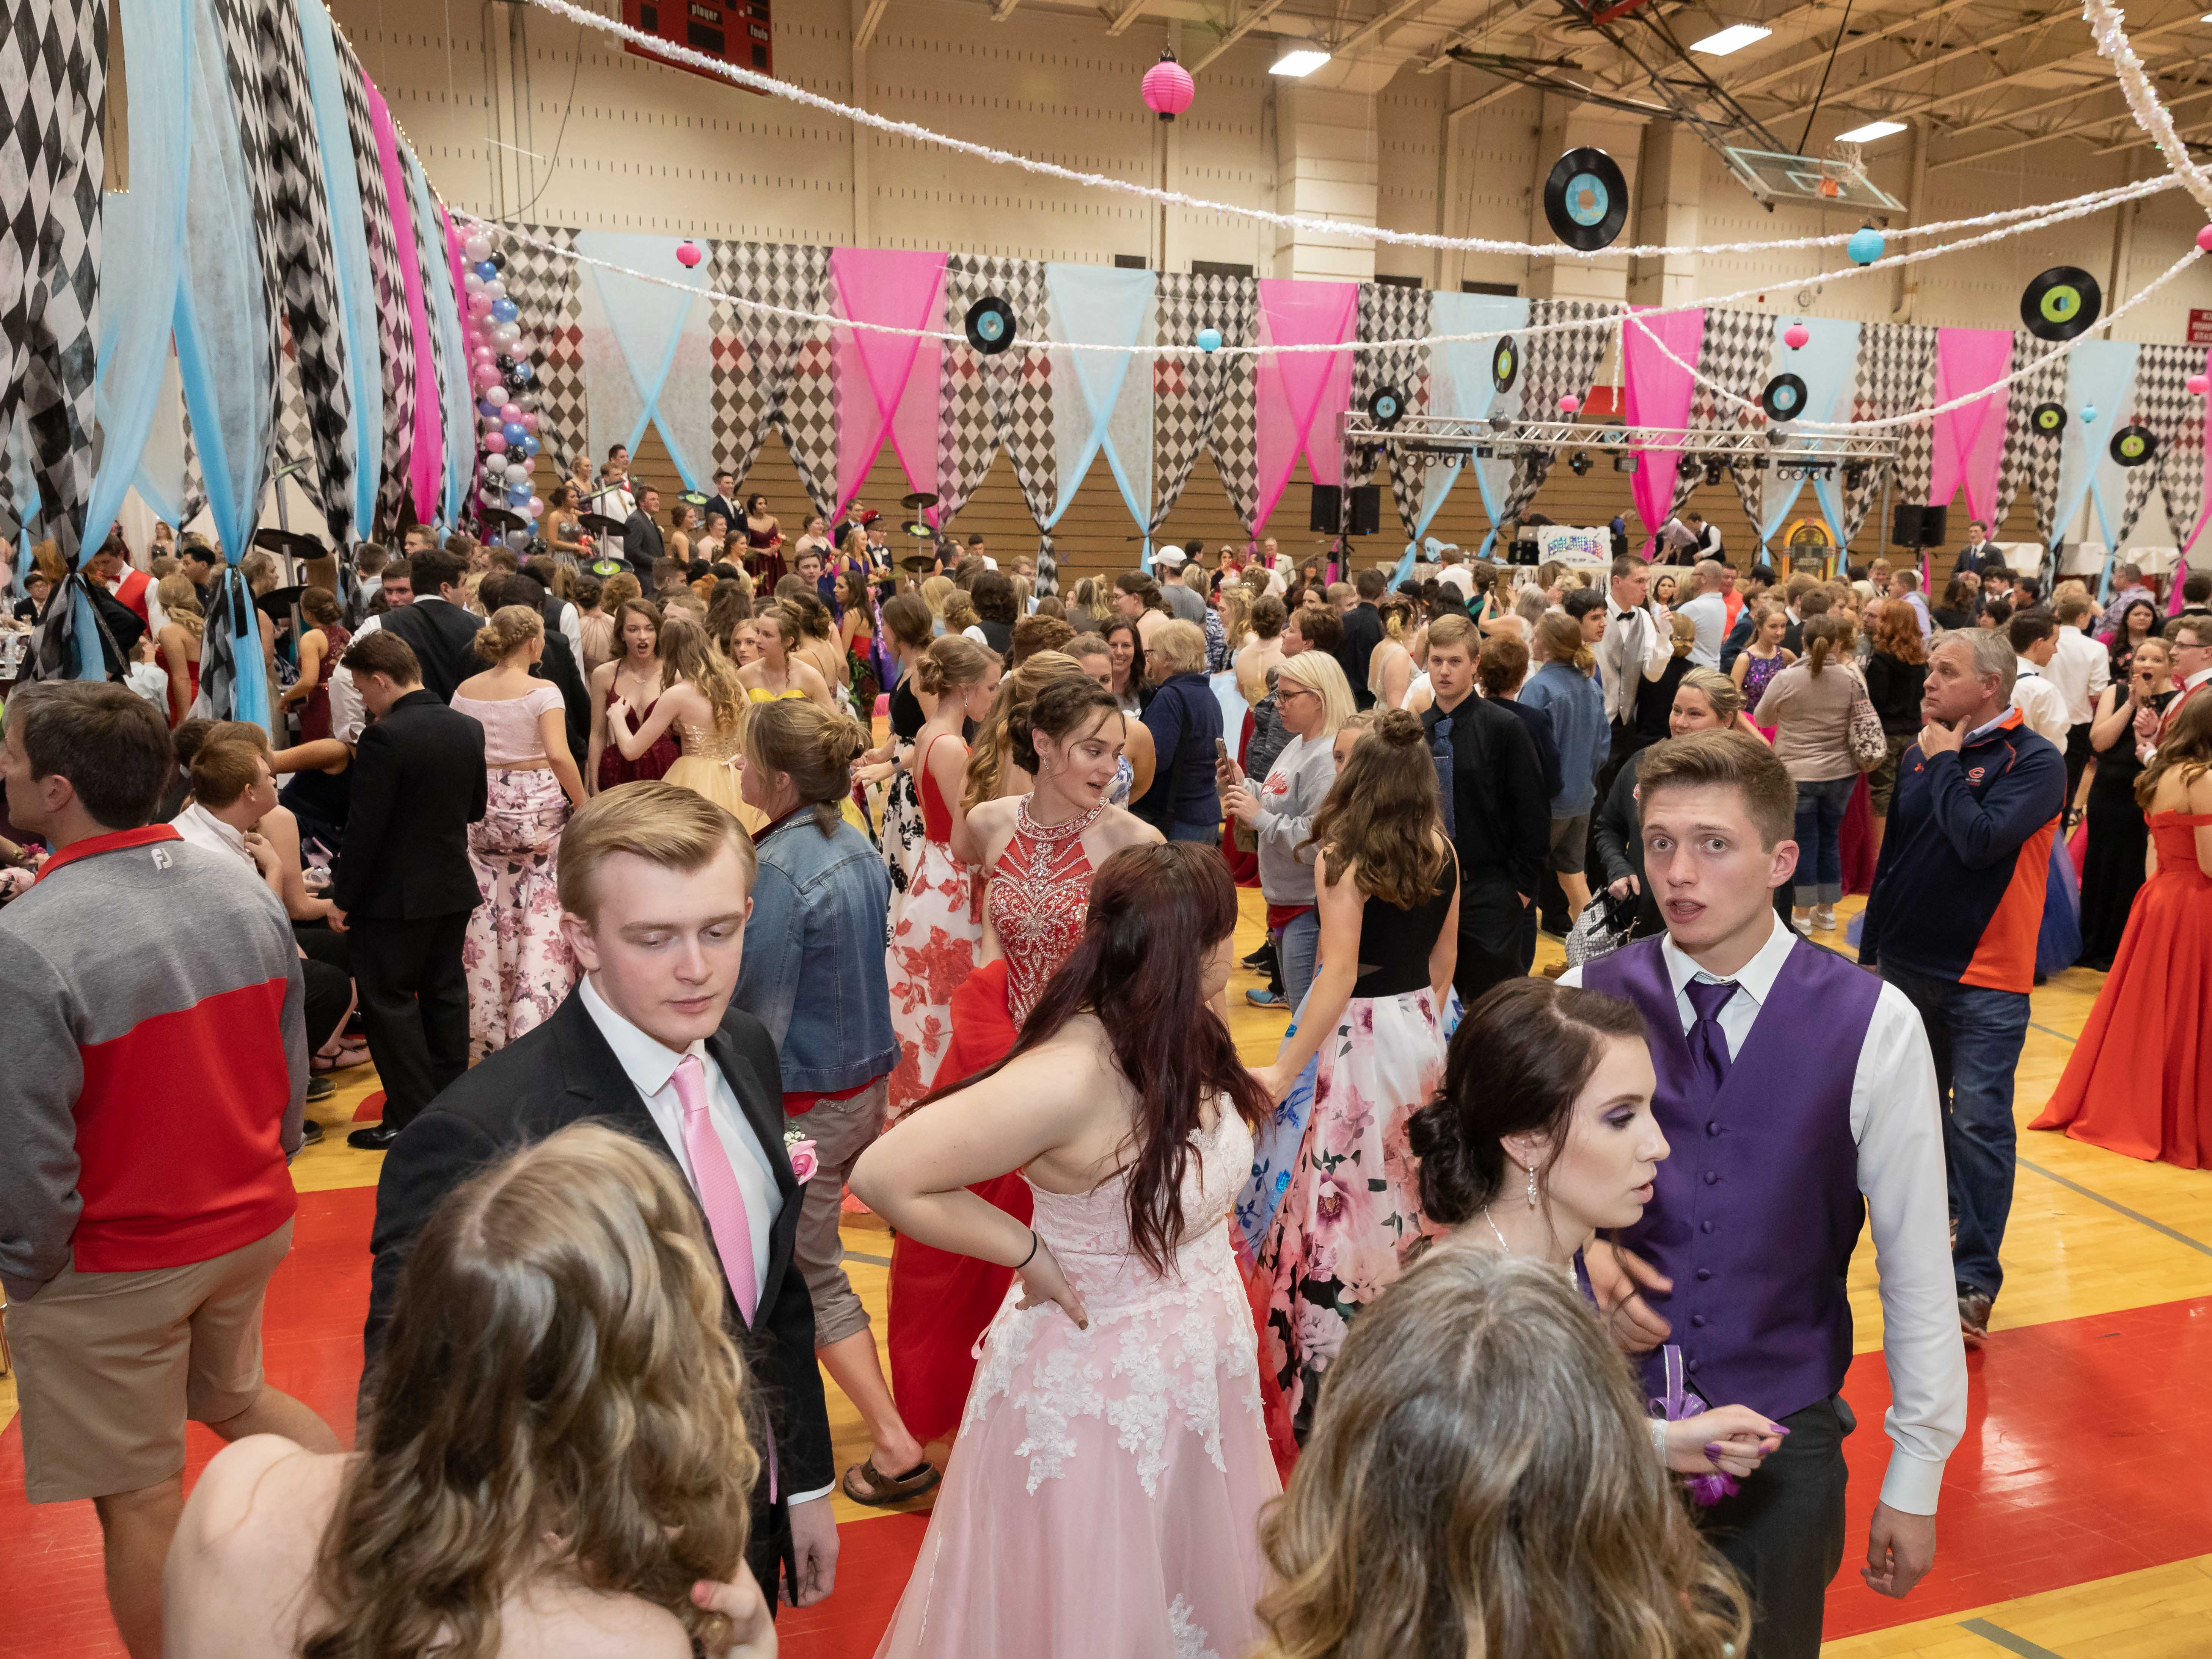 The Lincoln High School prom was held Saturday, May 4, 2019, at the high school in Wisconsin Rapids.